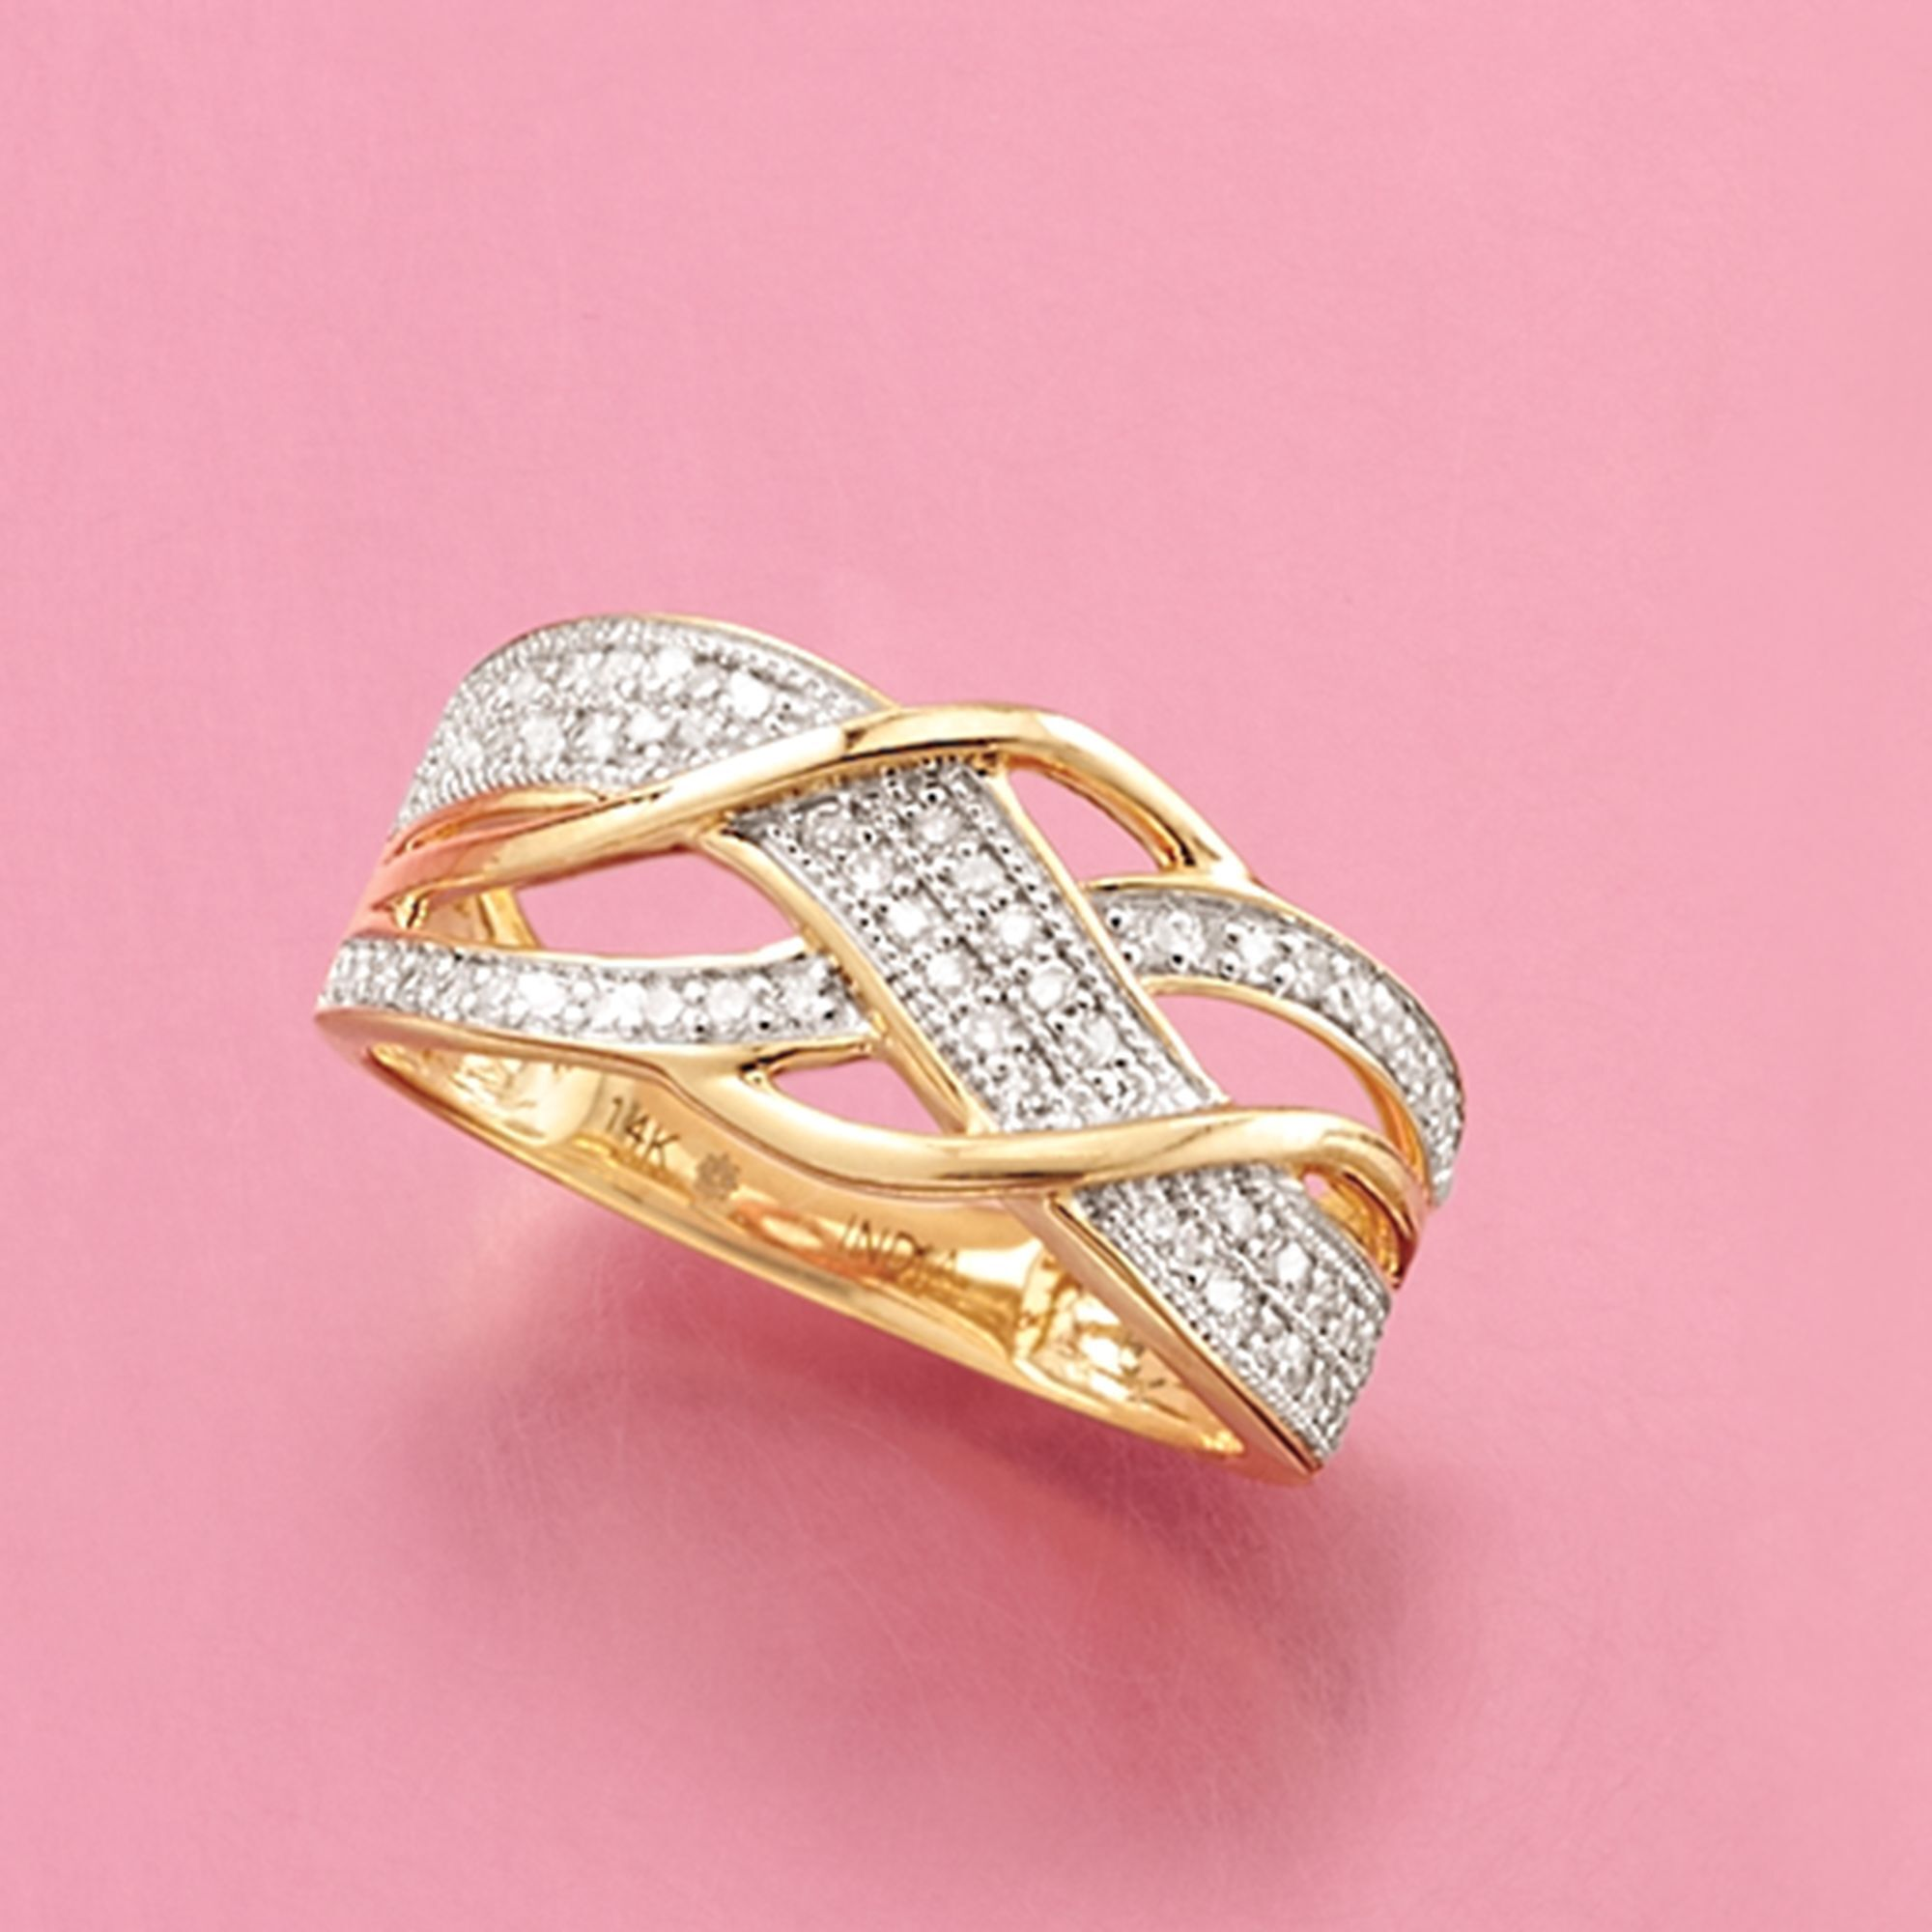 27 ct. t.w. Pave Diamond Crisscross Ring in 14kt Yellow Gold | Ross ...